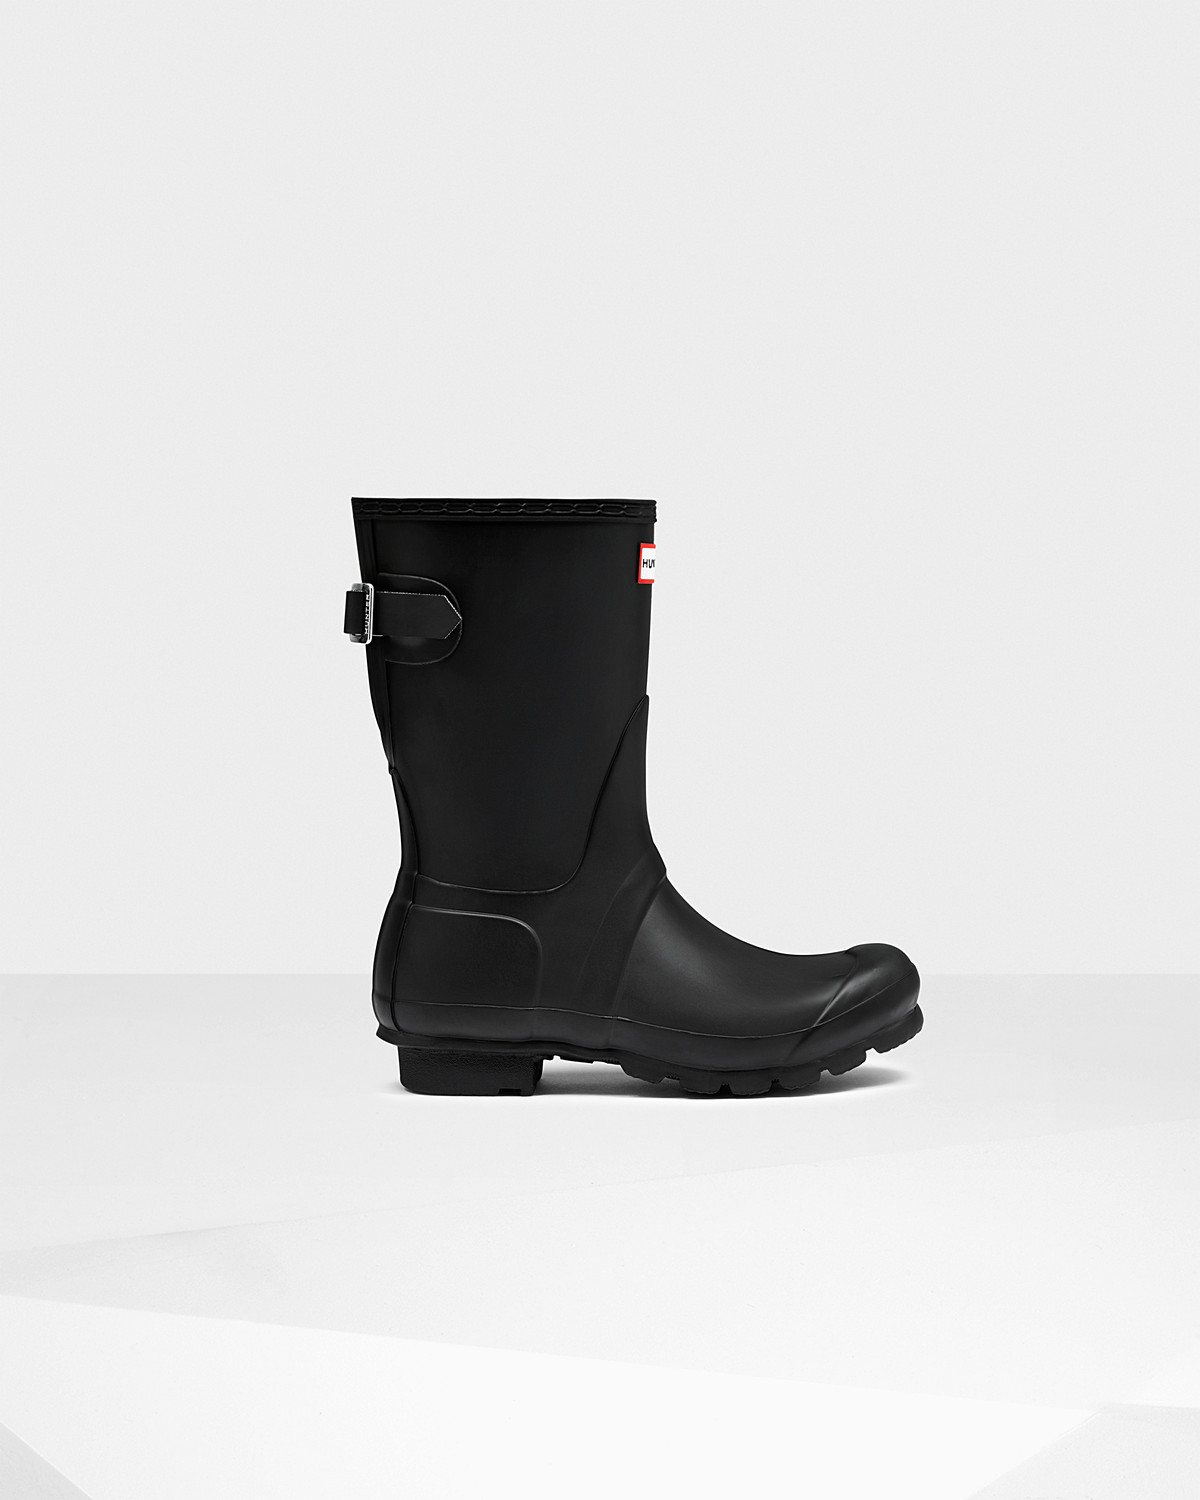 hunter_short_womens_boot.jpg